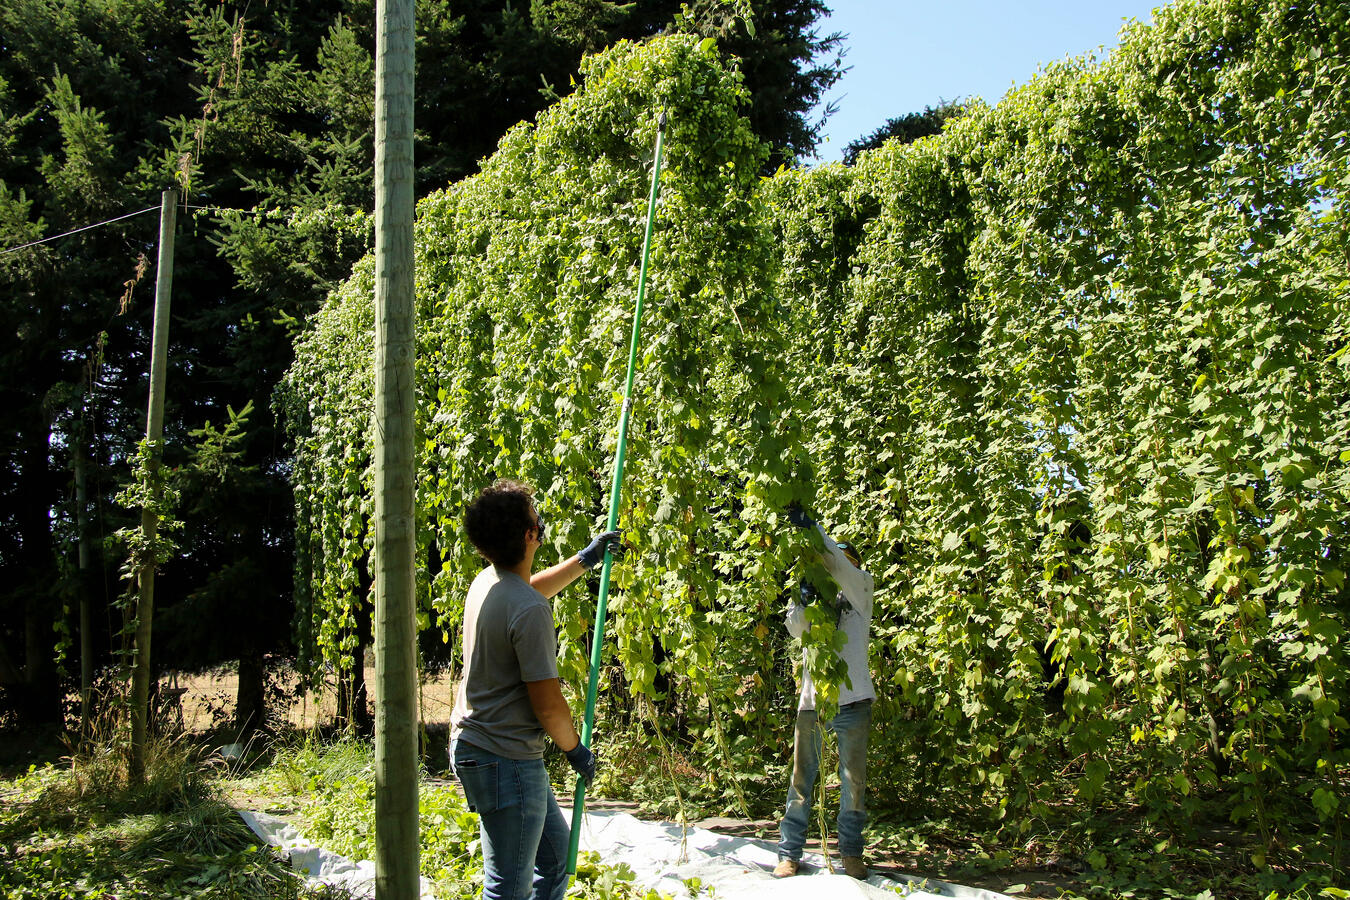 Organic hops plants being cut down from their trellises for harvest.